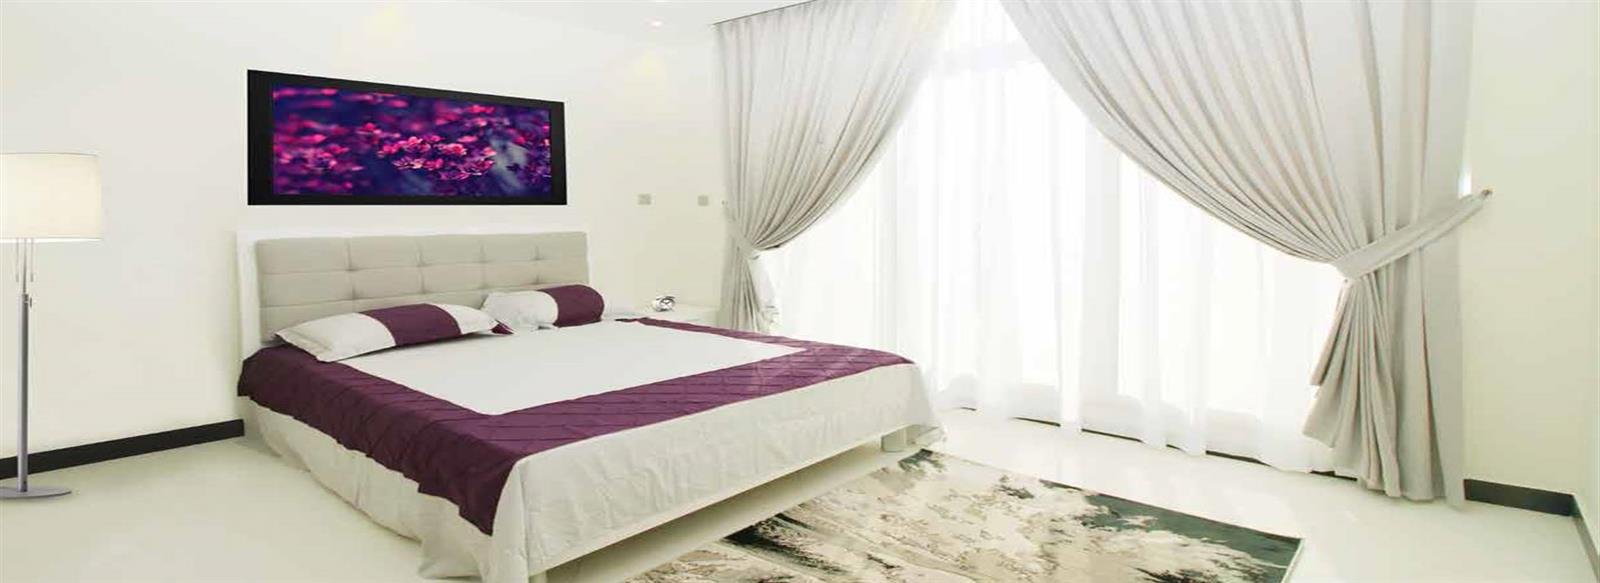 <div>LUXURY 3 BEDROOM TOWNHOUSES WITH MAID ROOM</div><div>STARTING PRICE FROM AED 1,910,000</div>